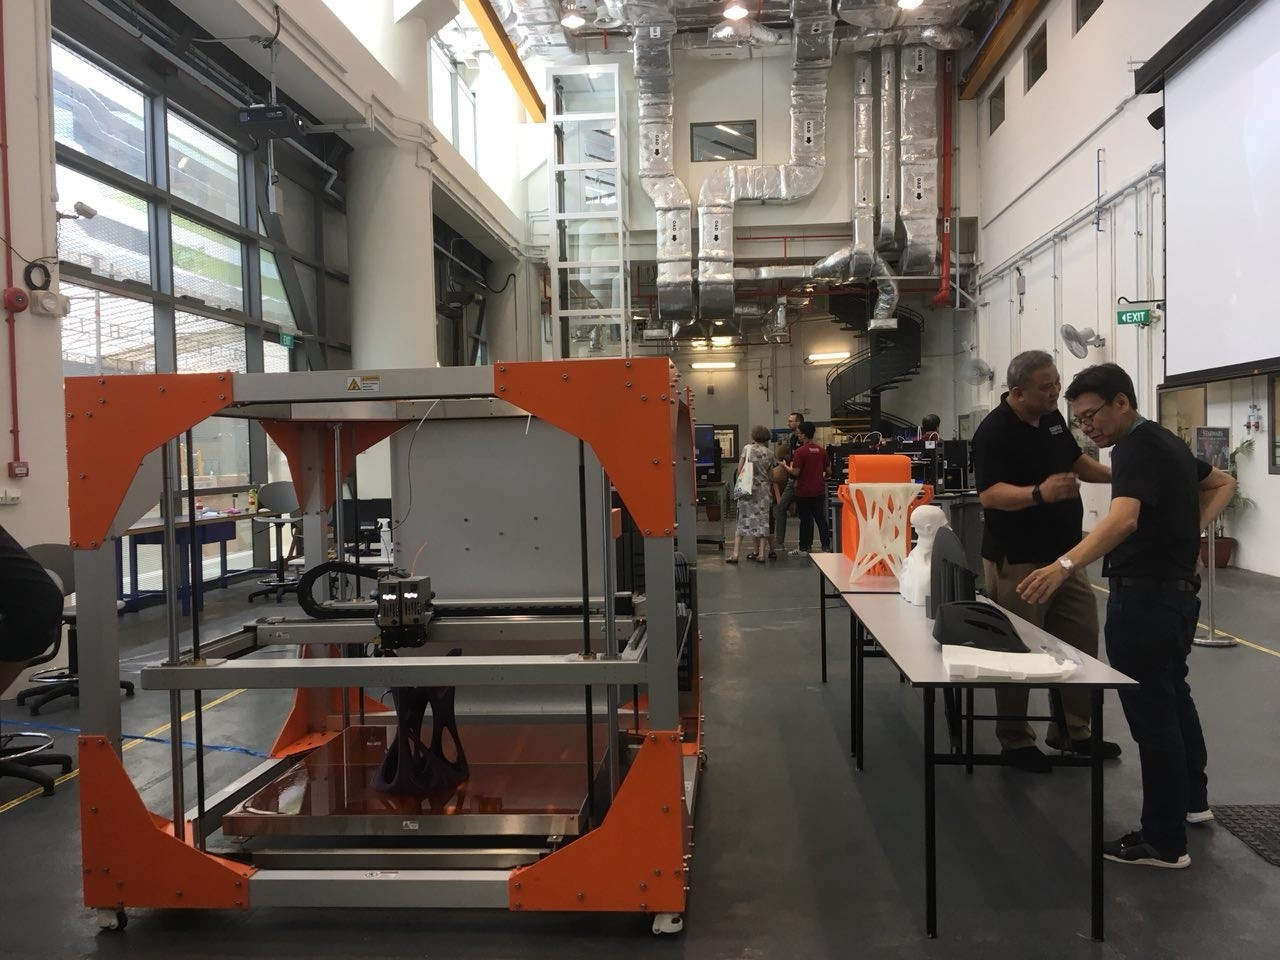 A new and large 3d printer, ready to help turn students' designs into reality